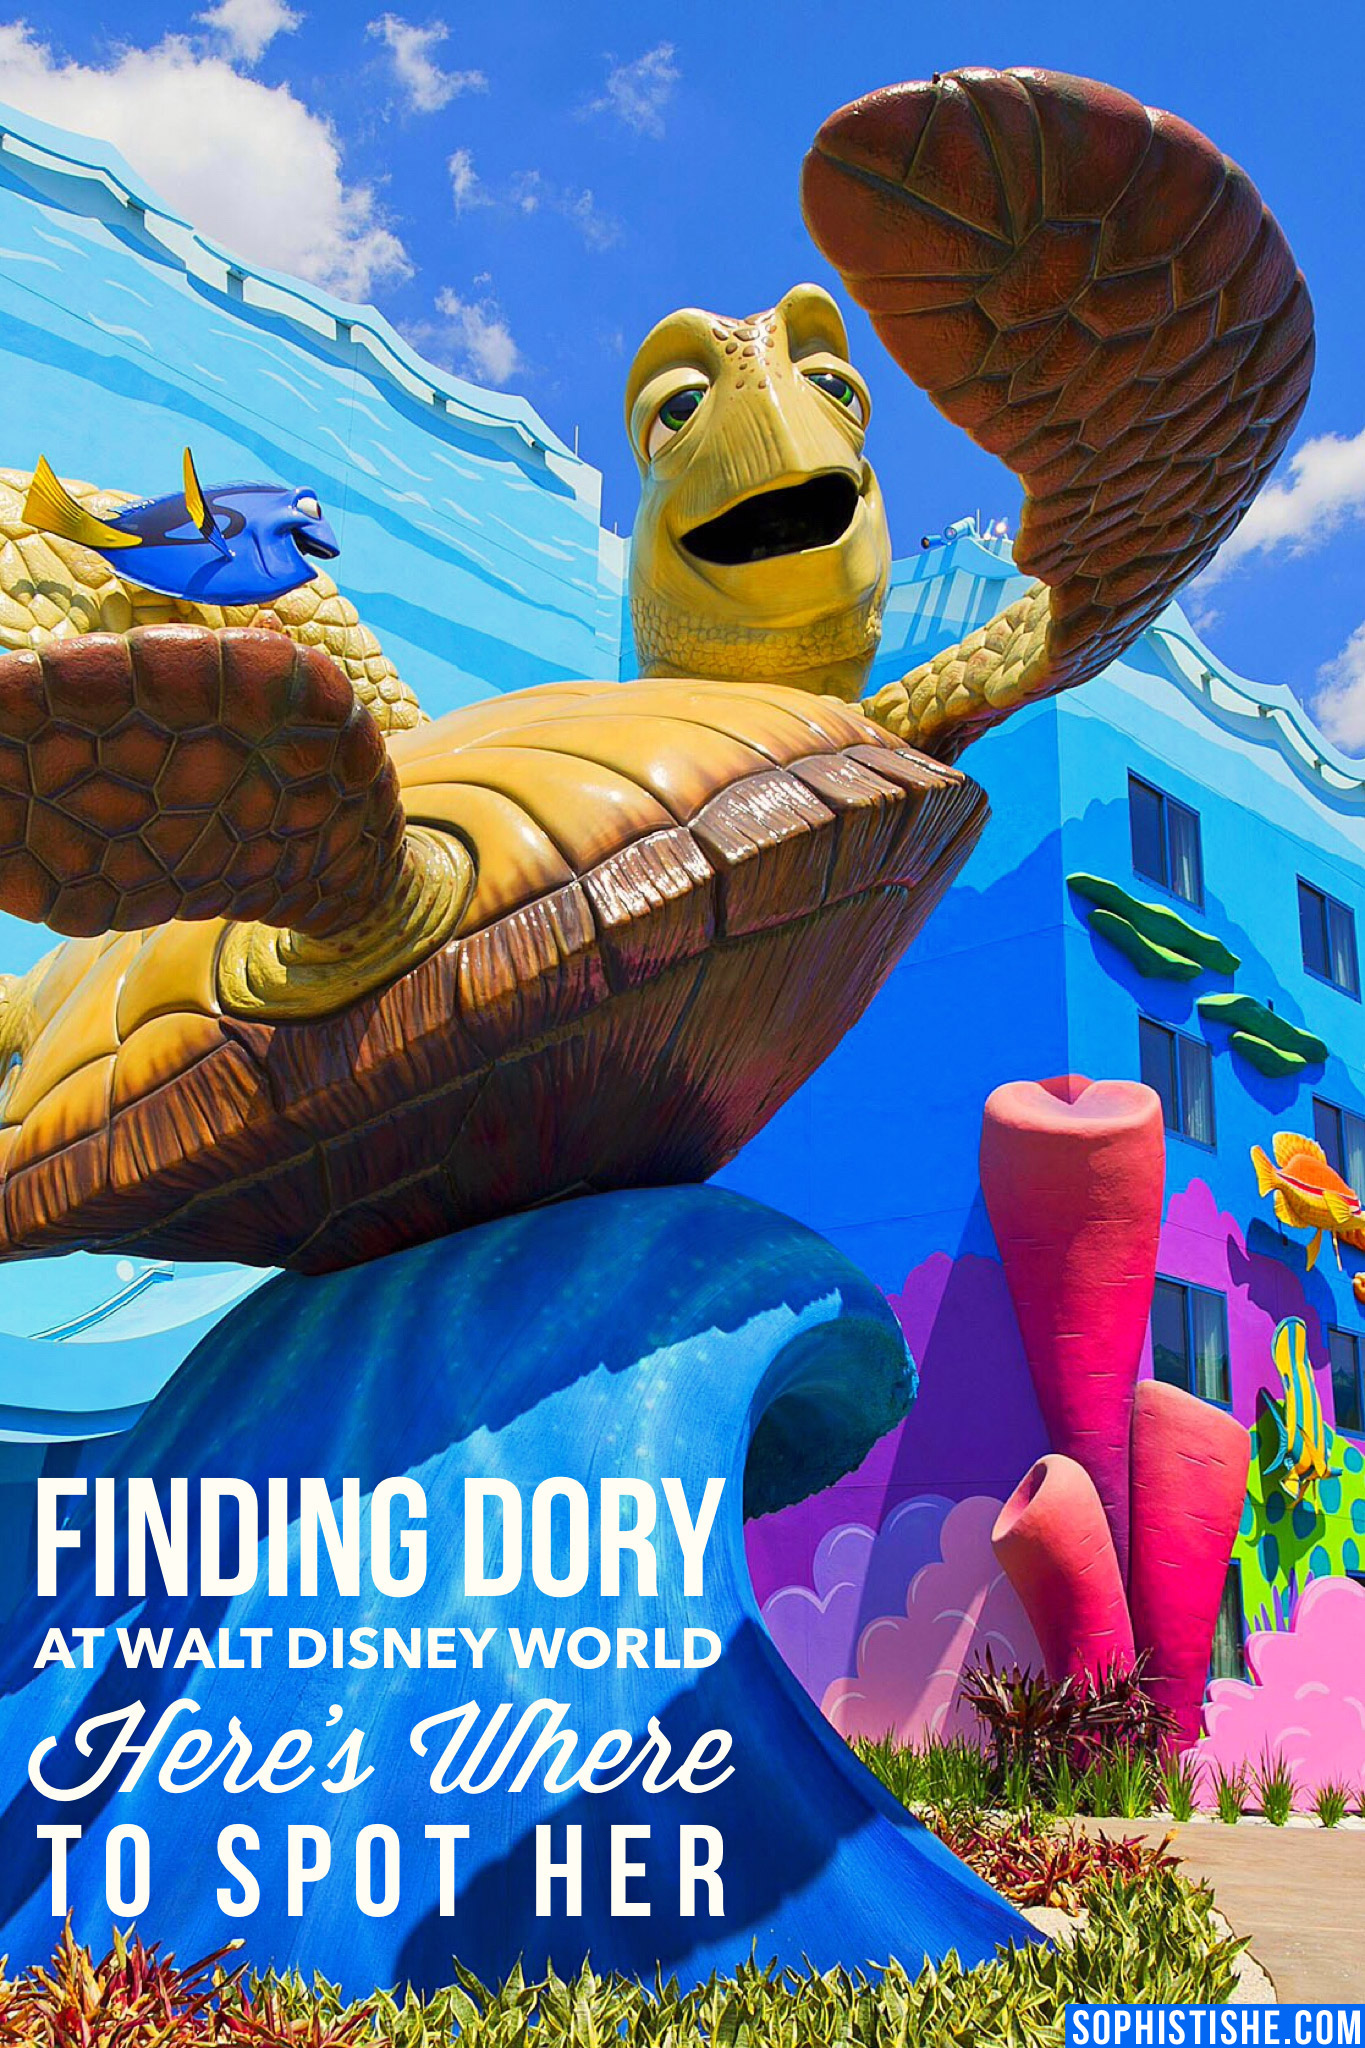 Finding Dory at Walt Disney World